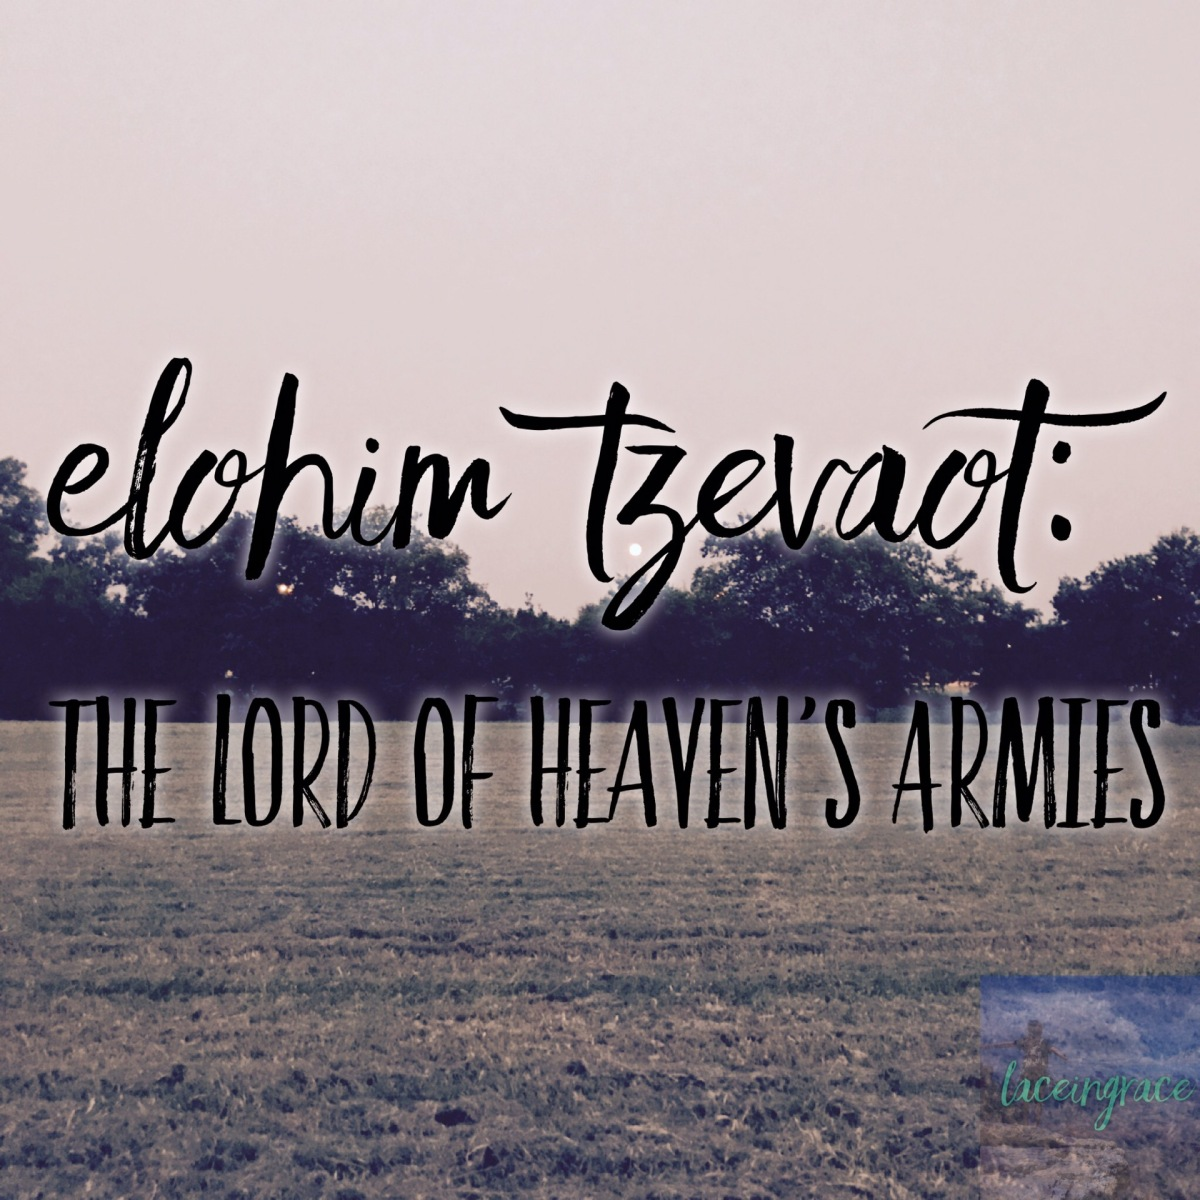 Lord of Heaven's Armies